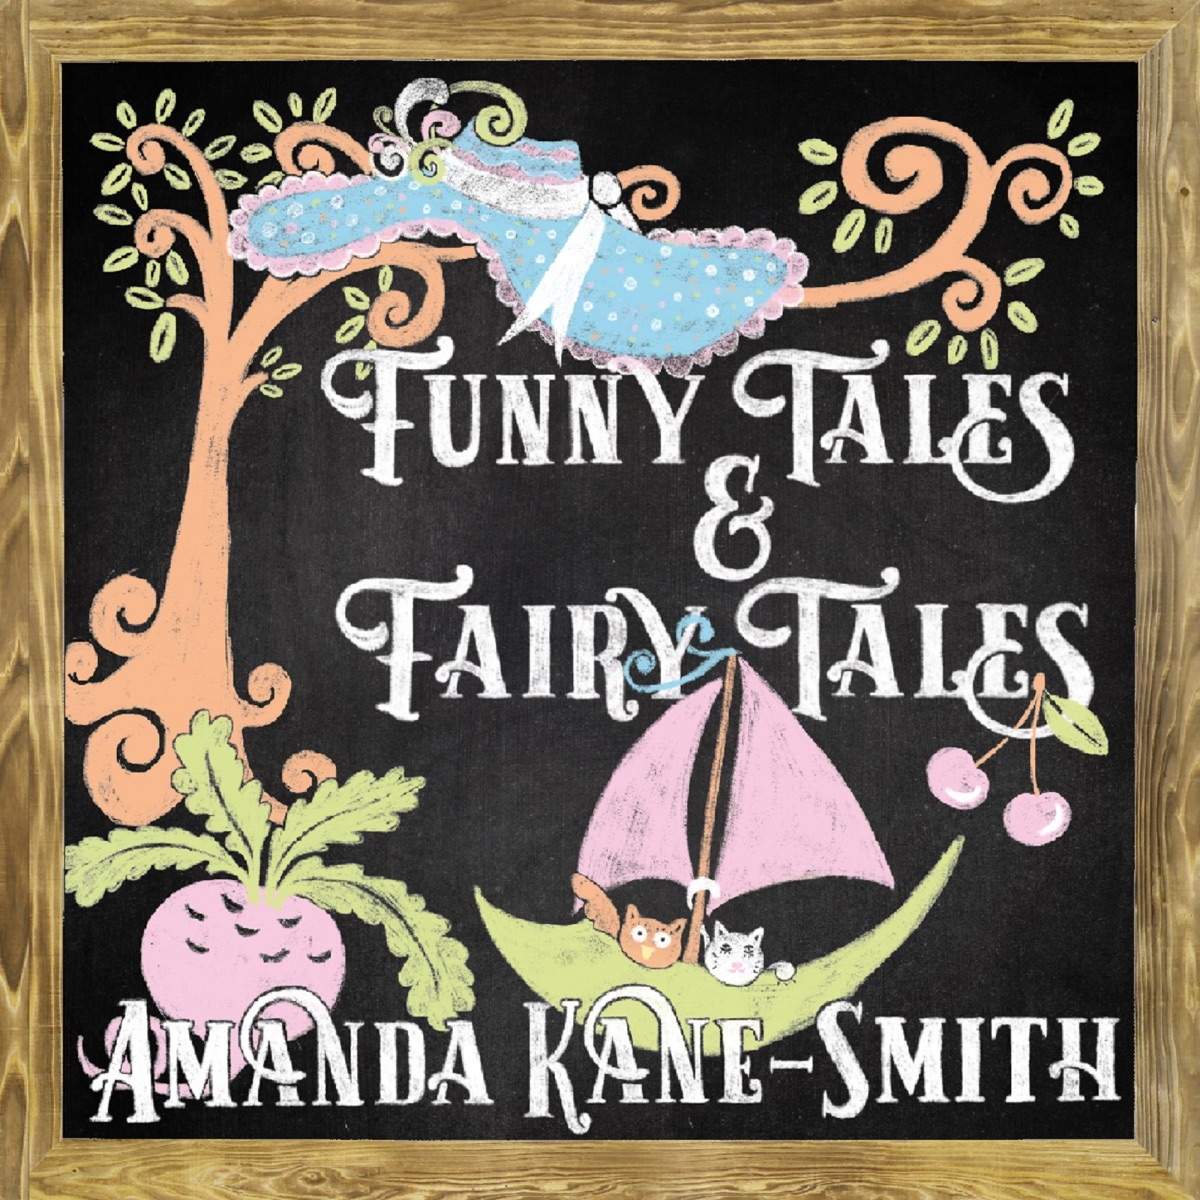 Funny Tales and Fairy Tales